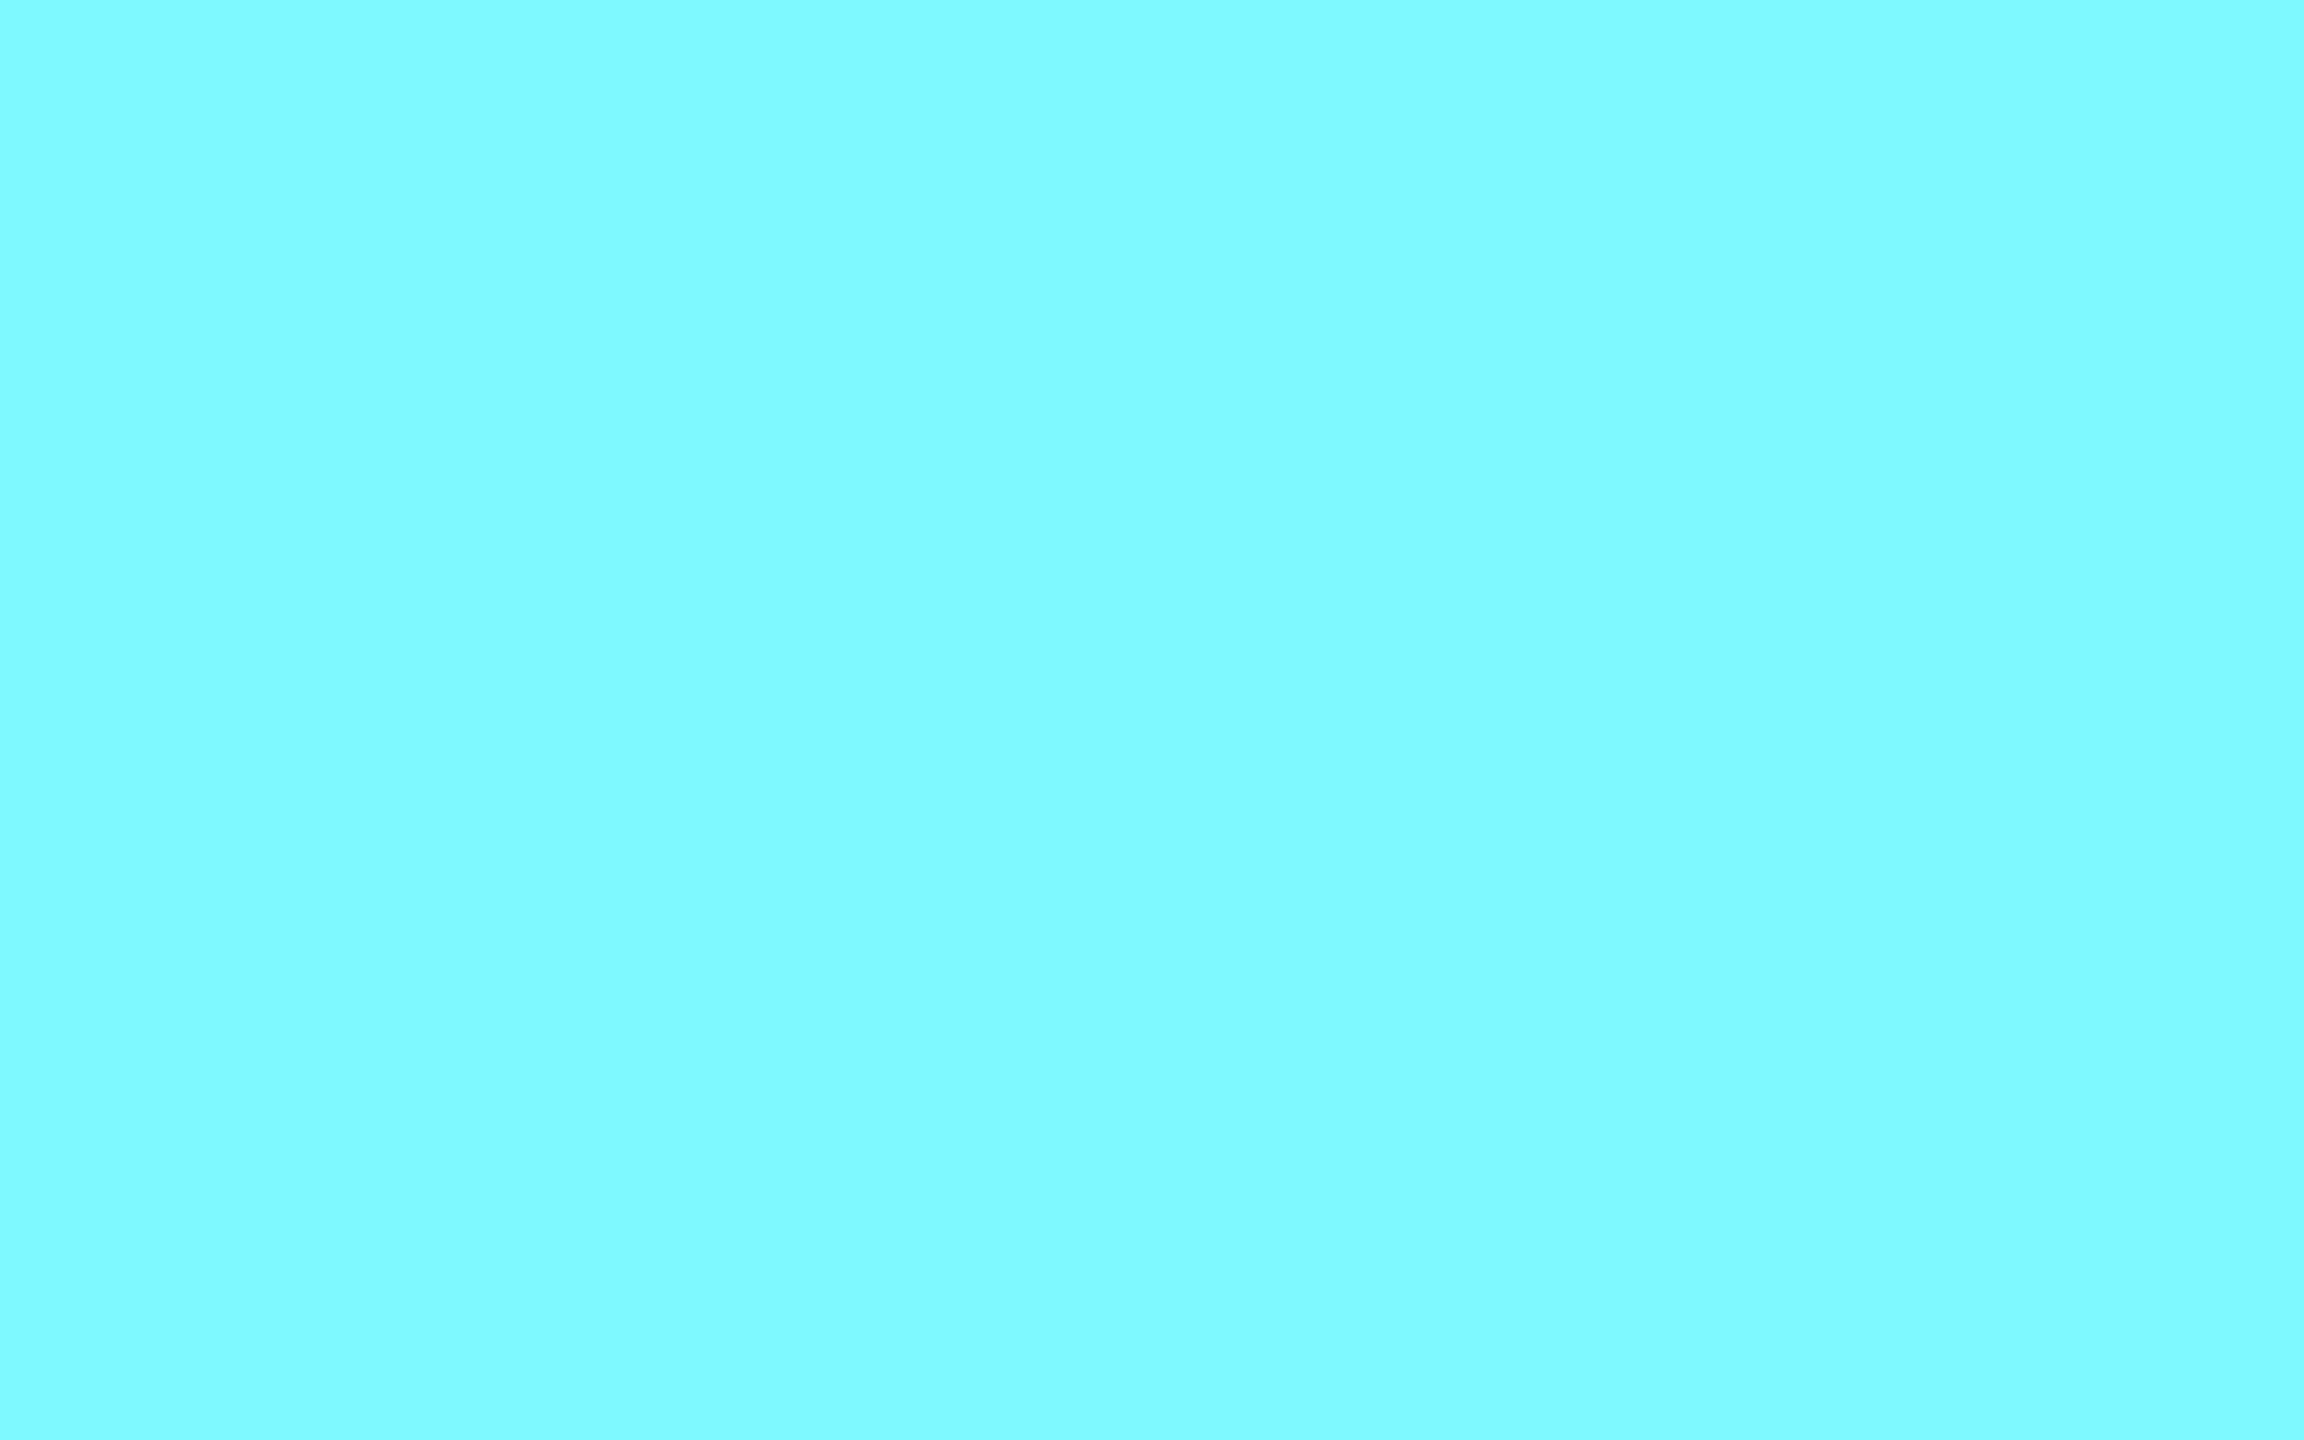 2304x1440 Electric Blue Solid Color Background